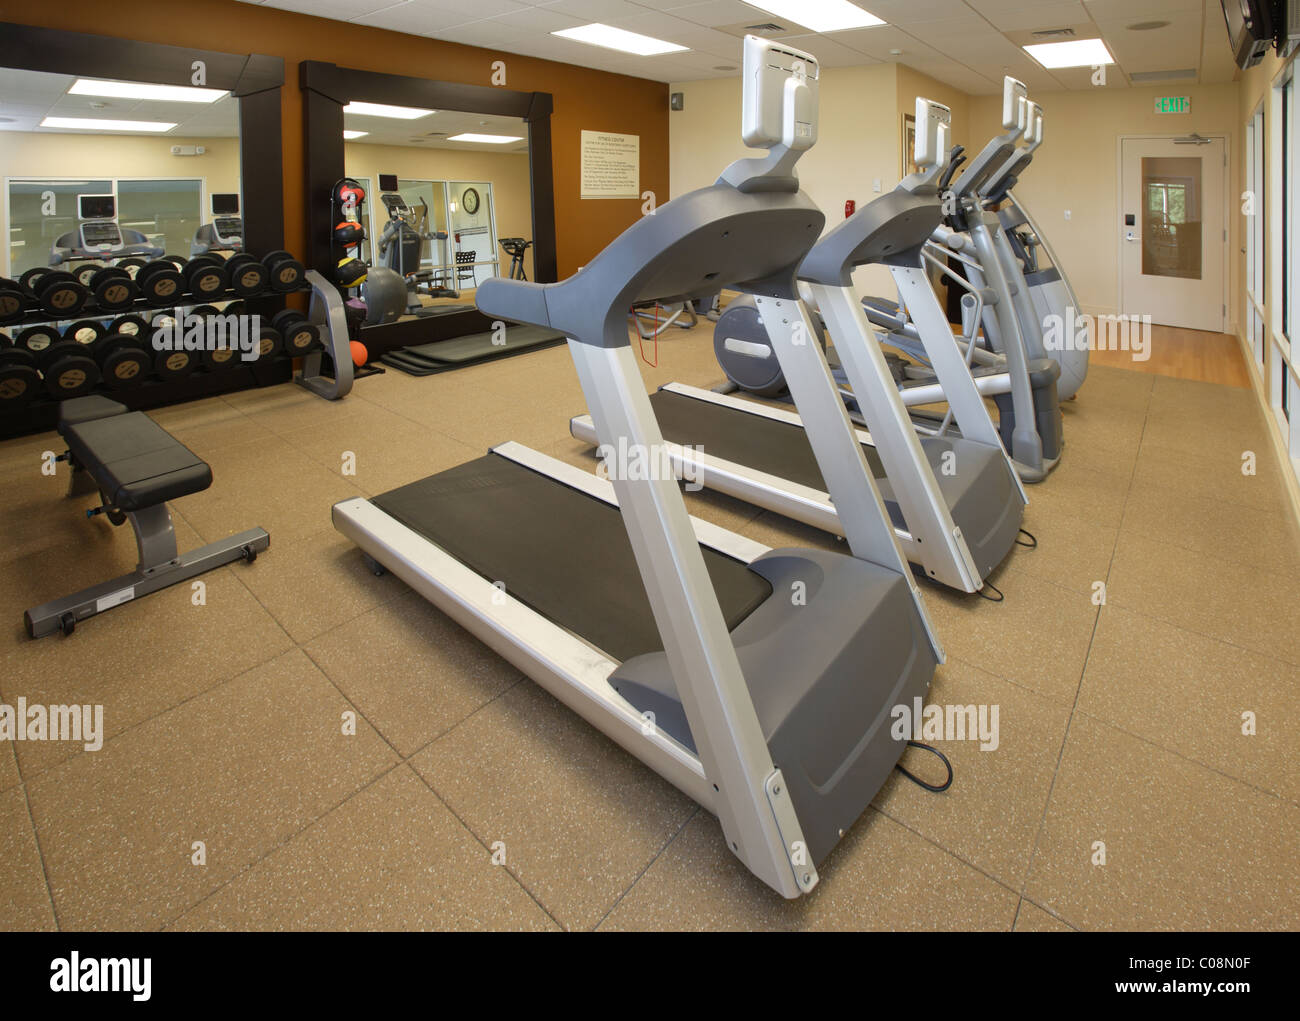 The fitness center in a hotel, with treadmills, free weights, stepper, and medicine balls. - Stock Image